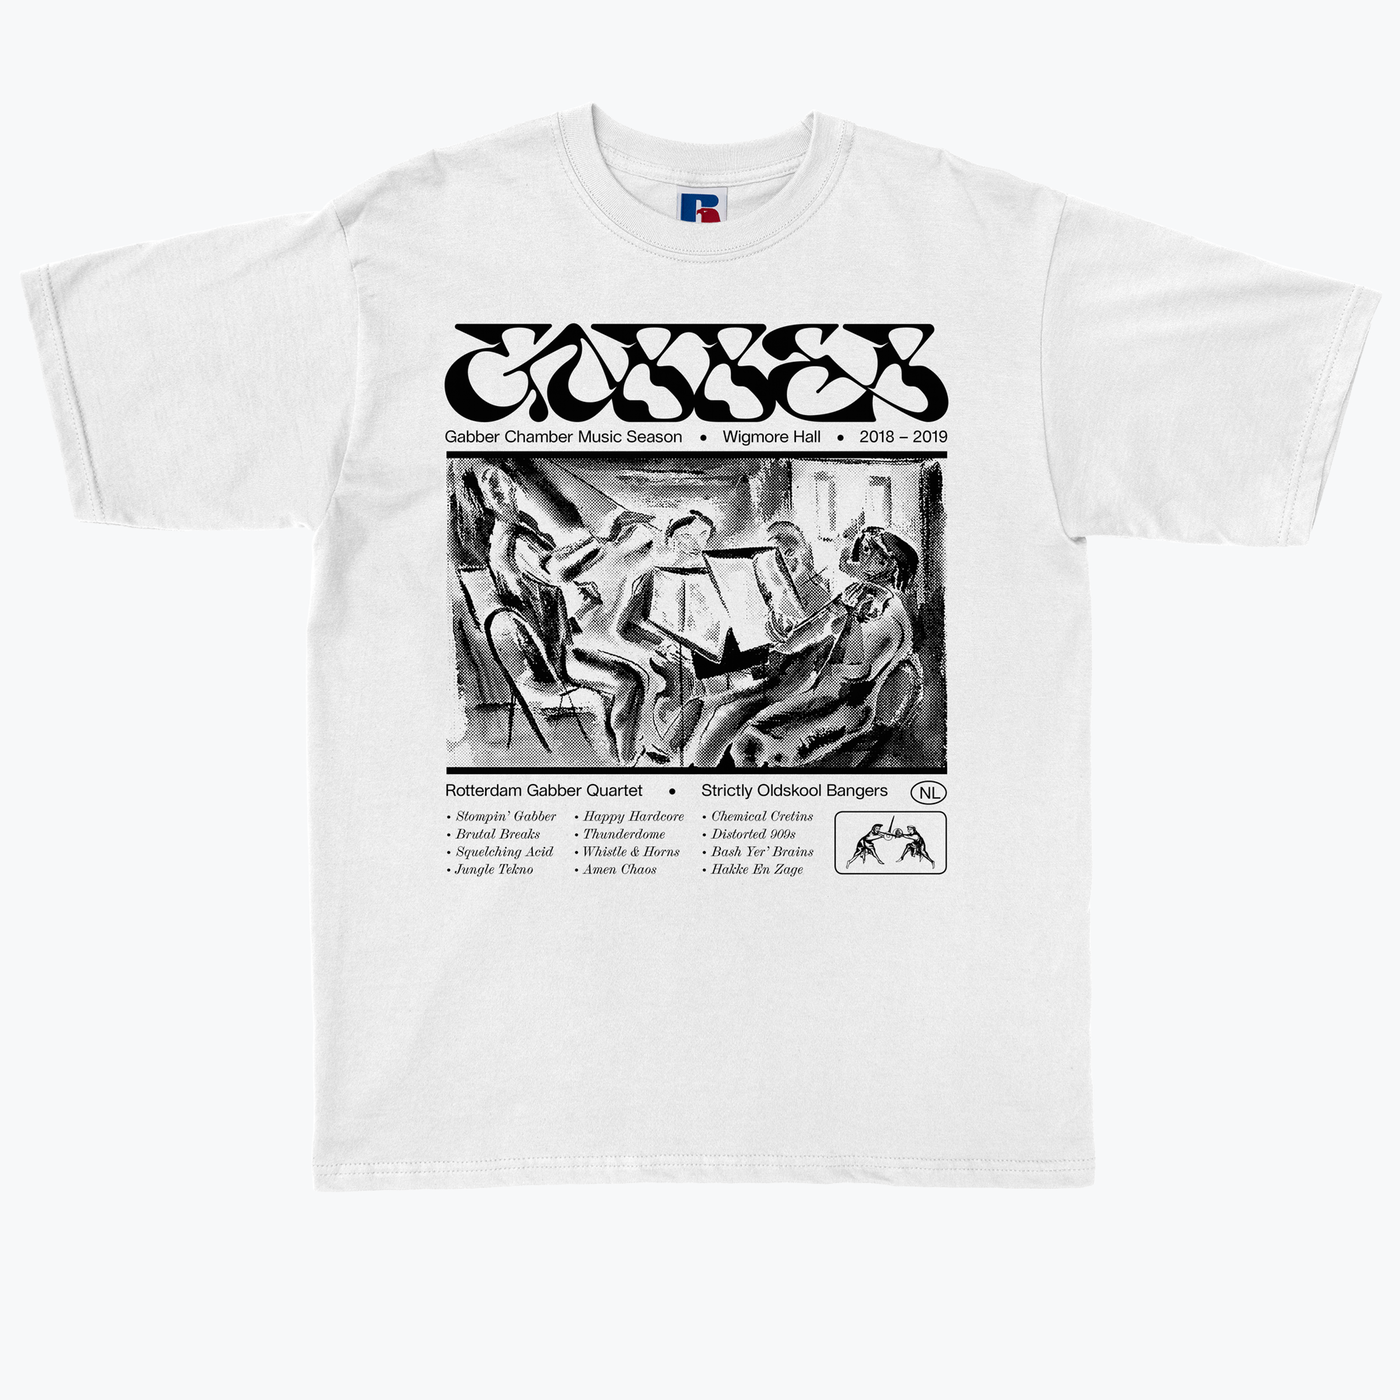 Jacob Wise 'Gabber Chamber Music' T-shirt